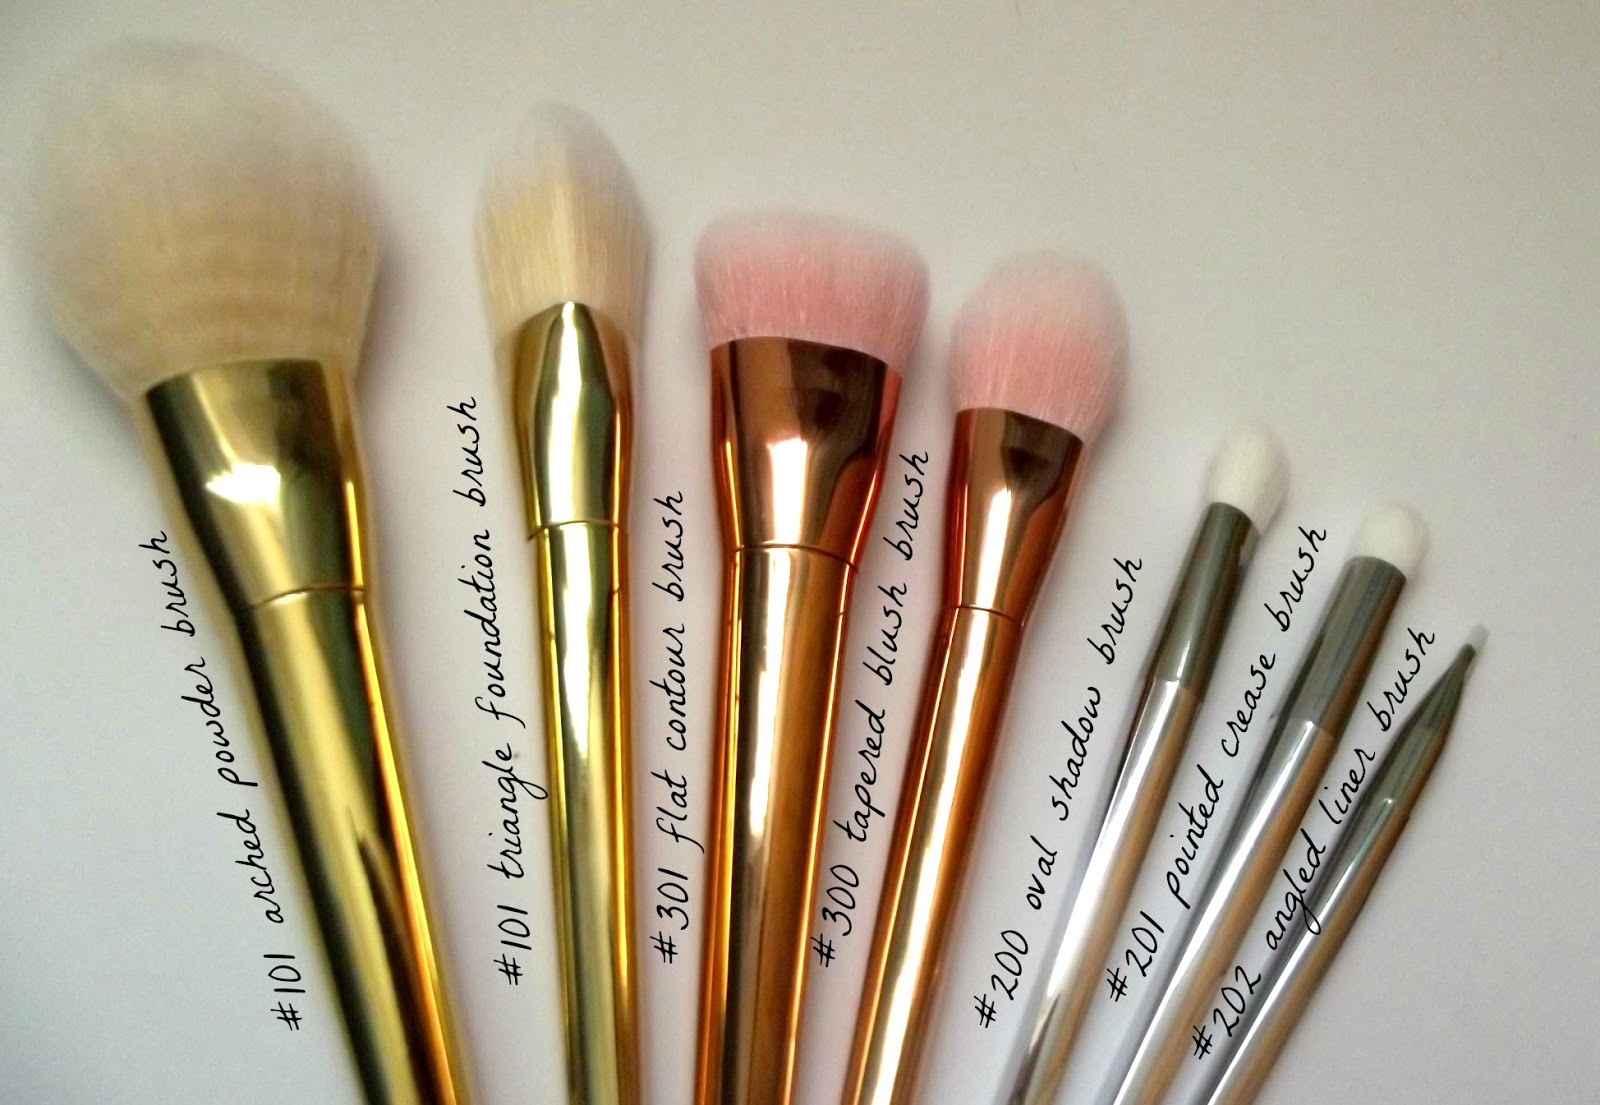 real techniques bold metals contour brush. real techniques bold metals brushes - ebay dupes contour brush